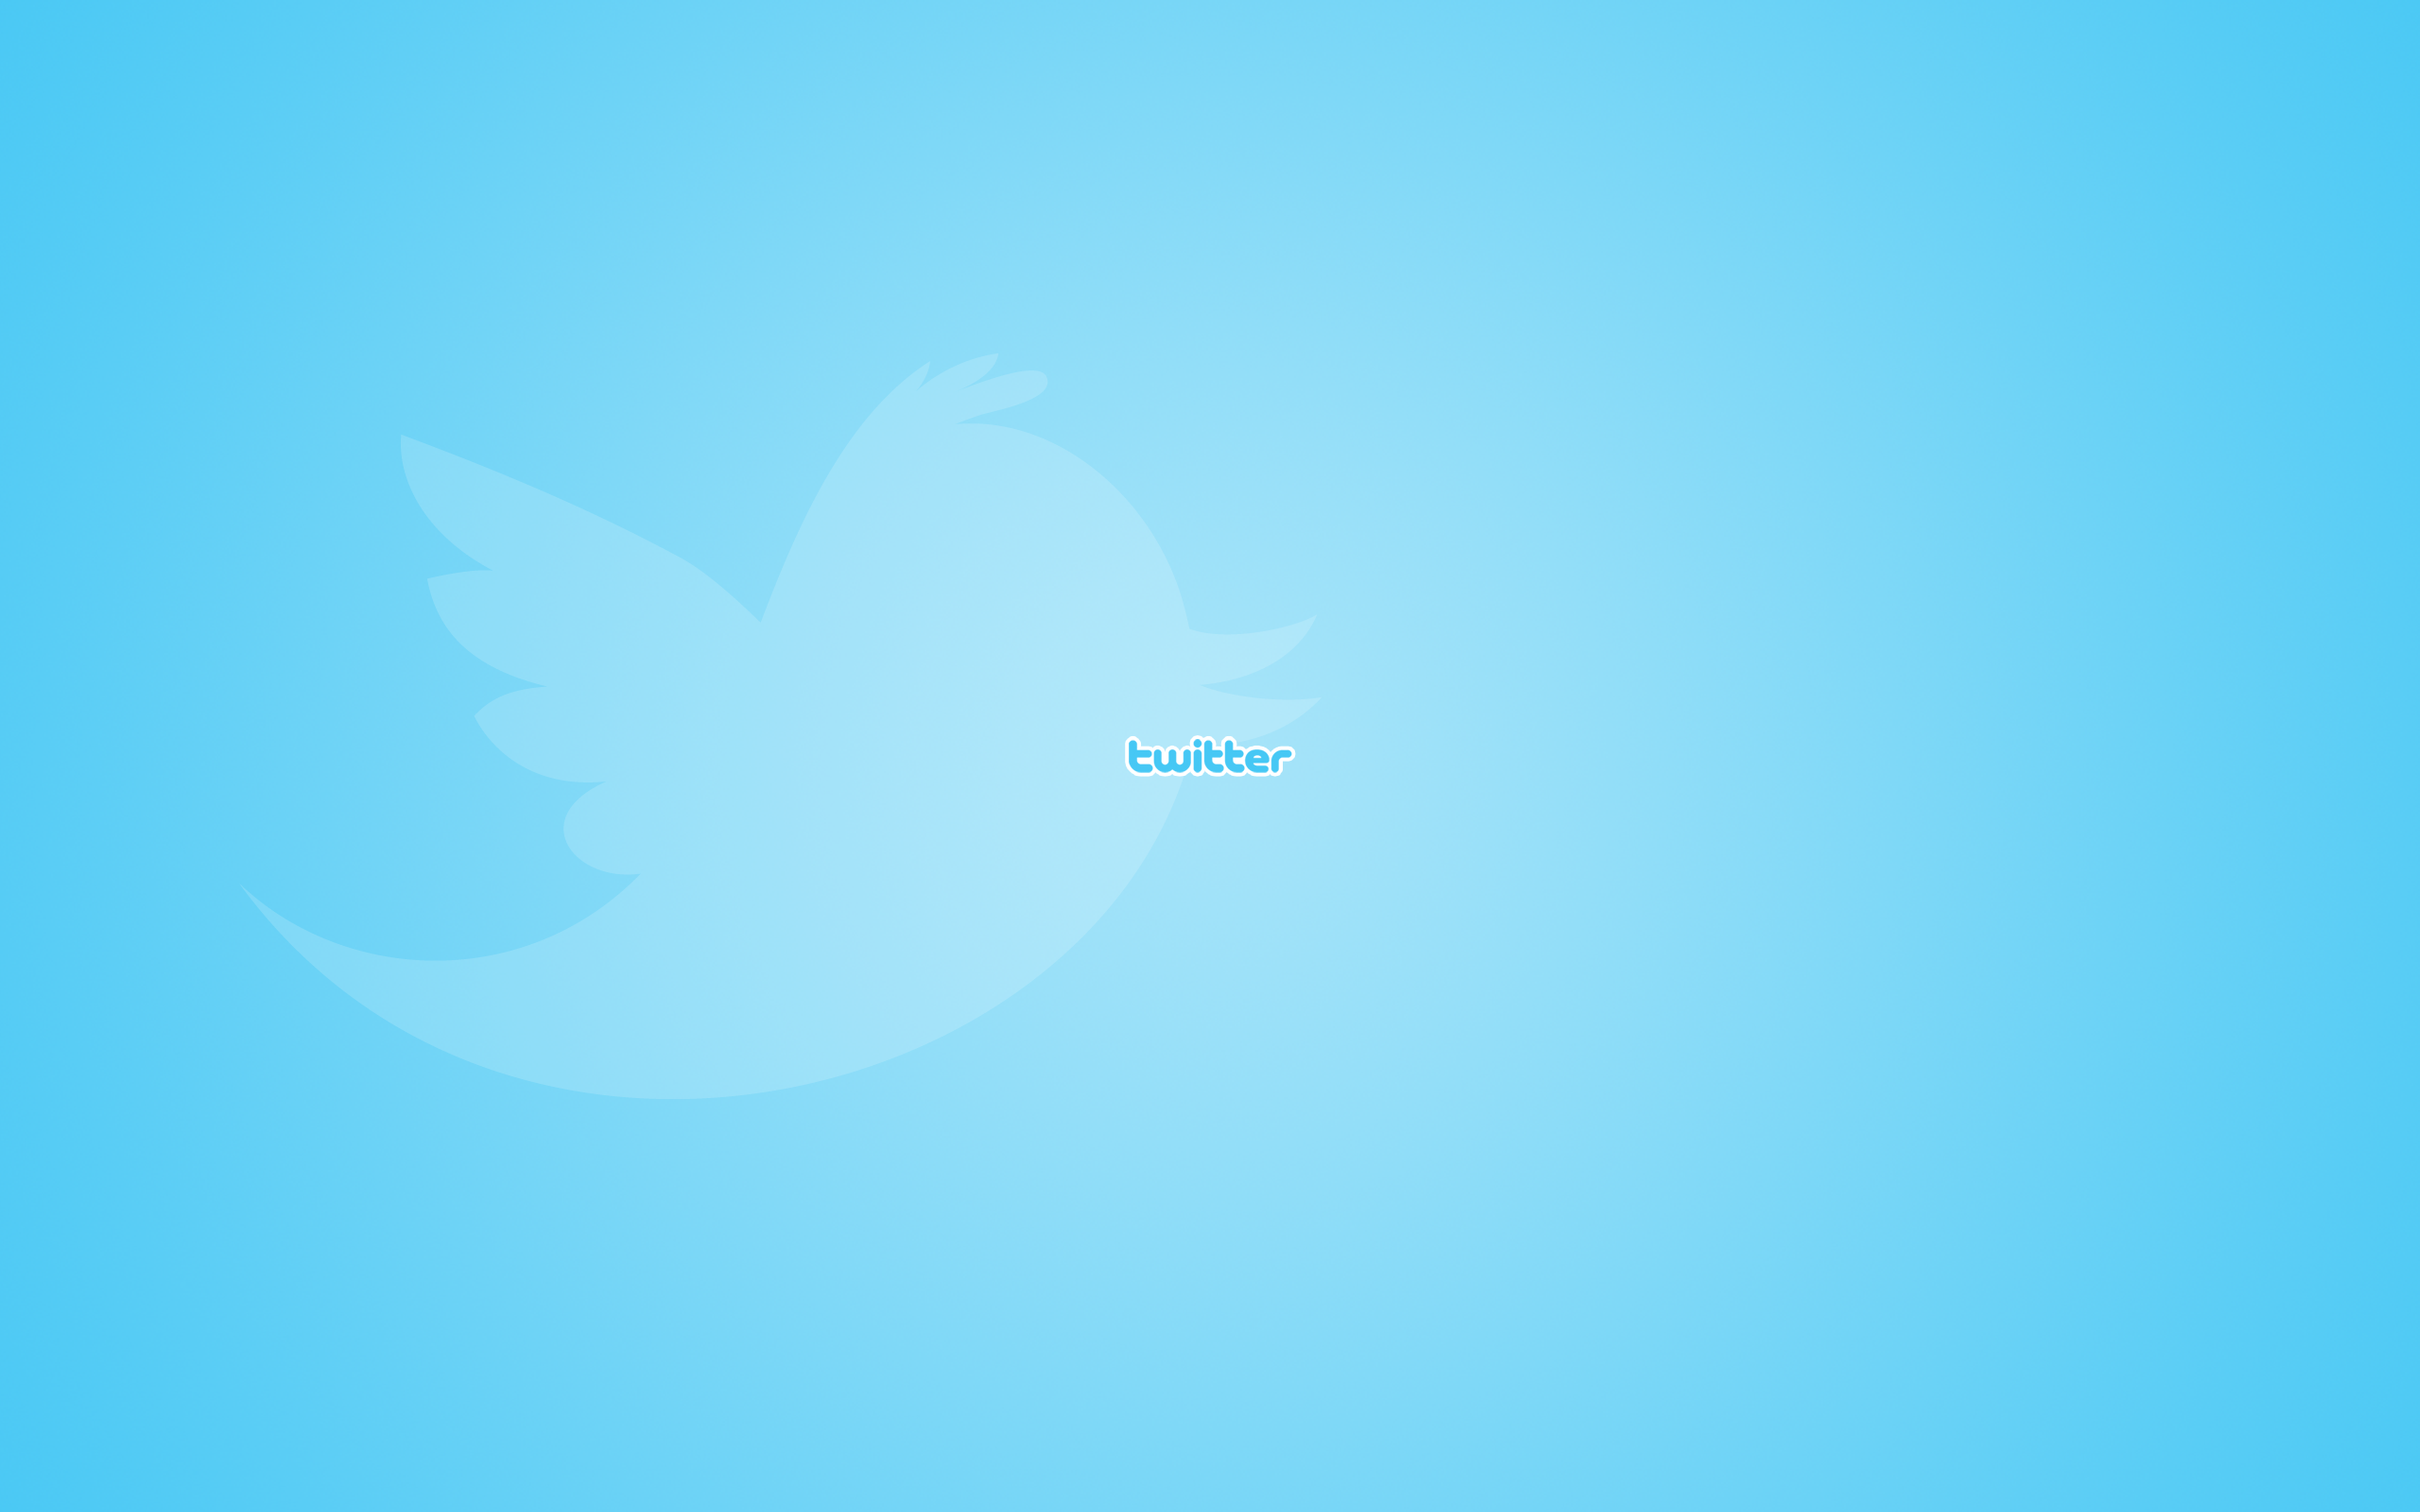 Twitter Wallpapers Free Download